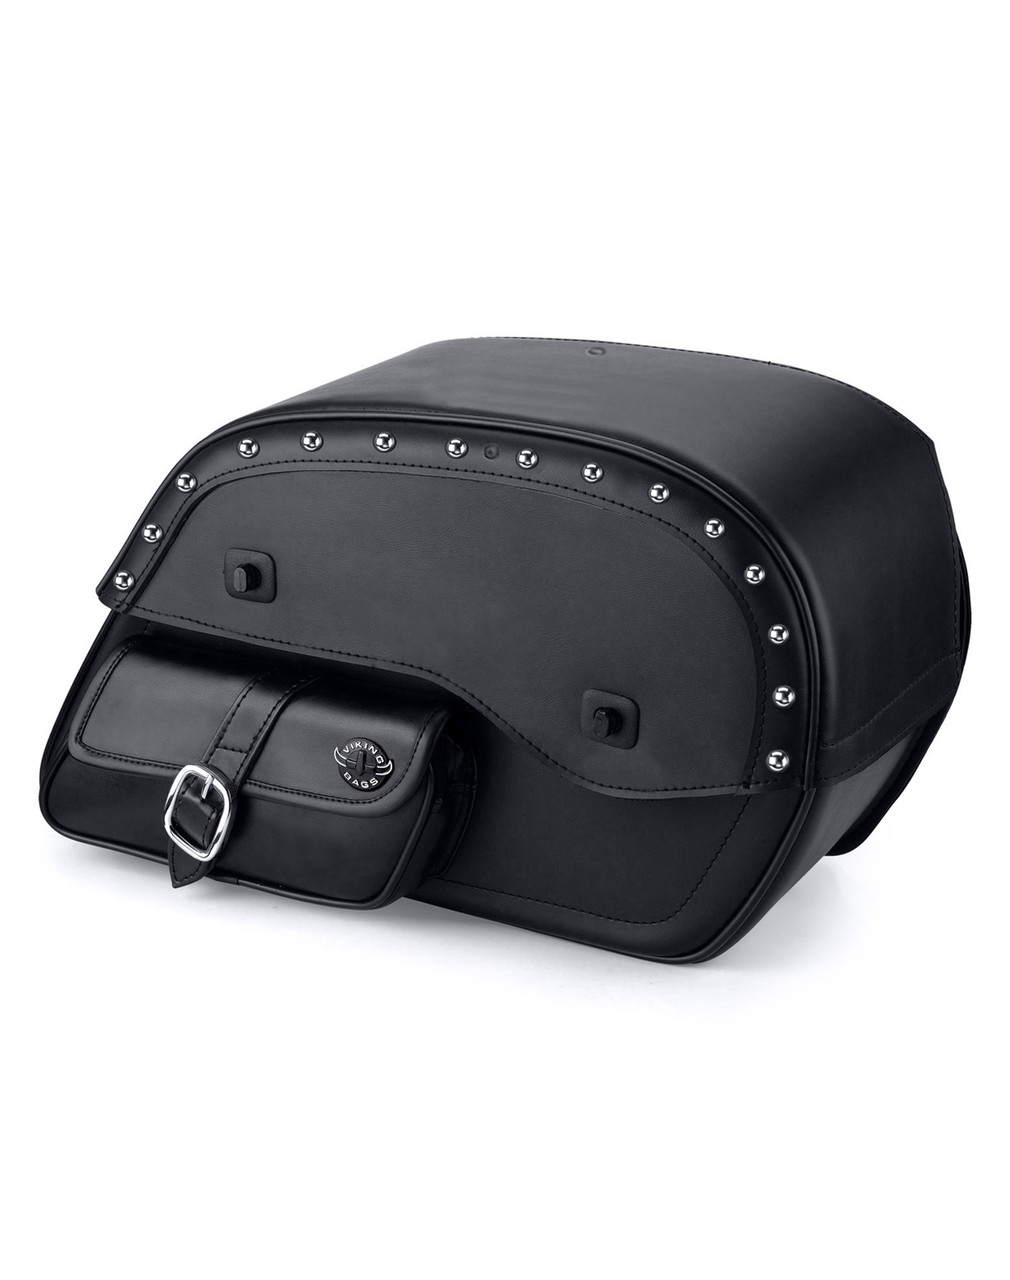 Viking SS Side Pocket Studded Large Motorcycle Saddlebags For Harley Softail Custom FXSTC Main Bag View